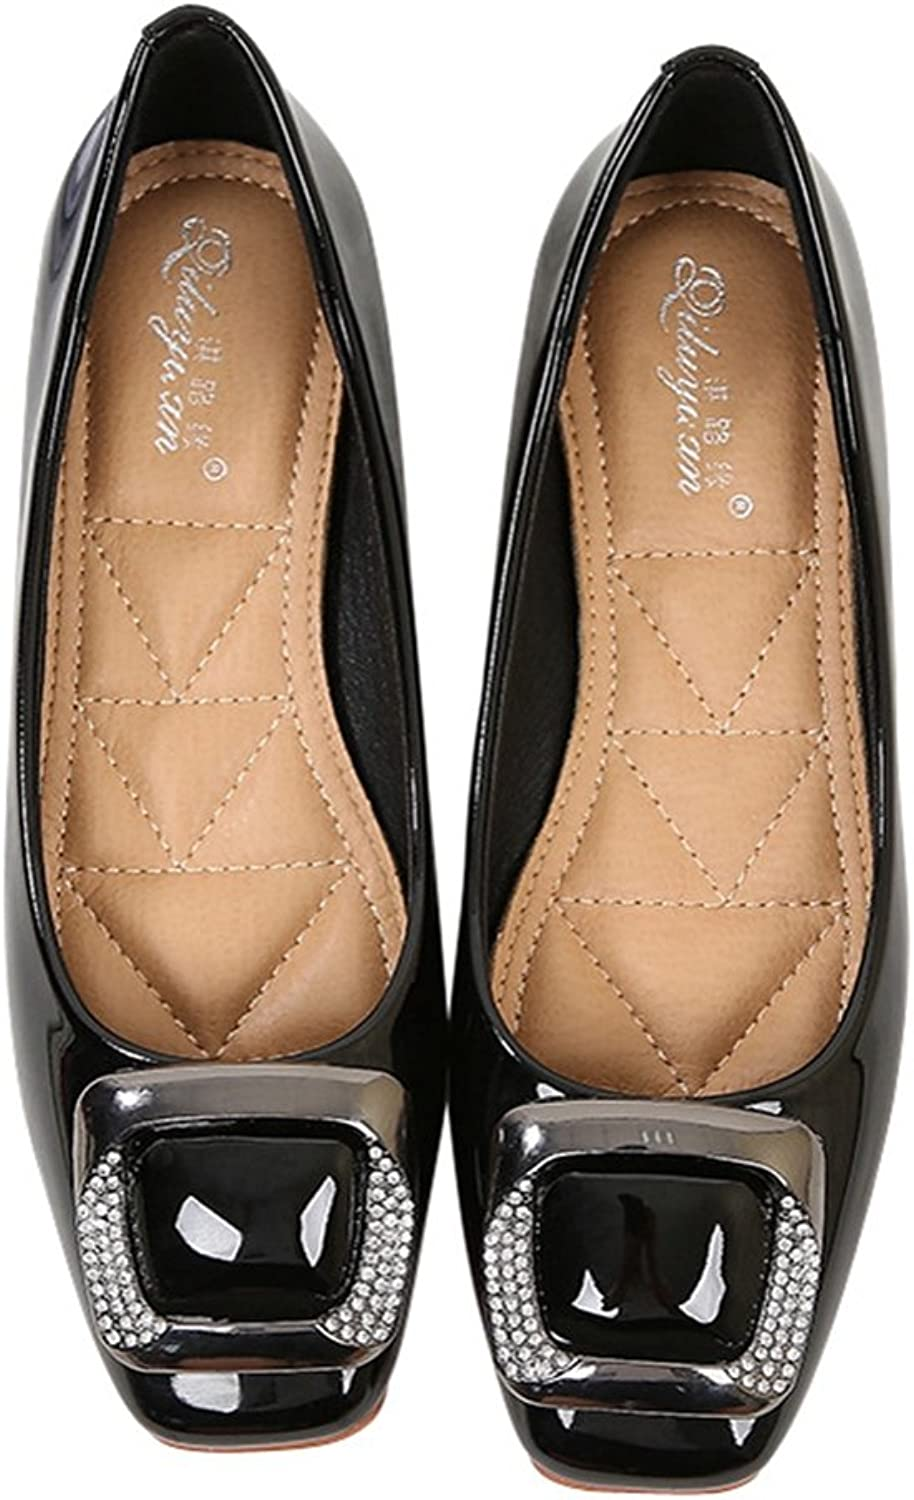 T-JULY Womens Buckle Slip On Loafer Casual Flats Square Toe shoes Moccasins Comfort Boat Dress shoes